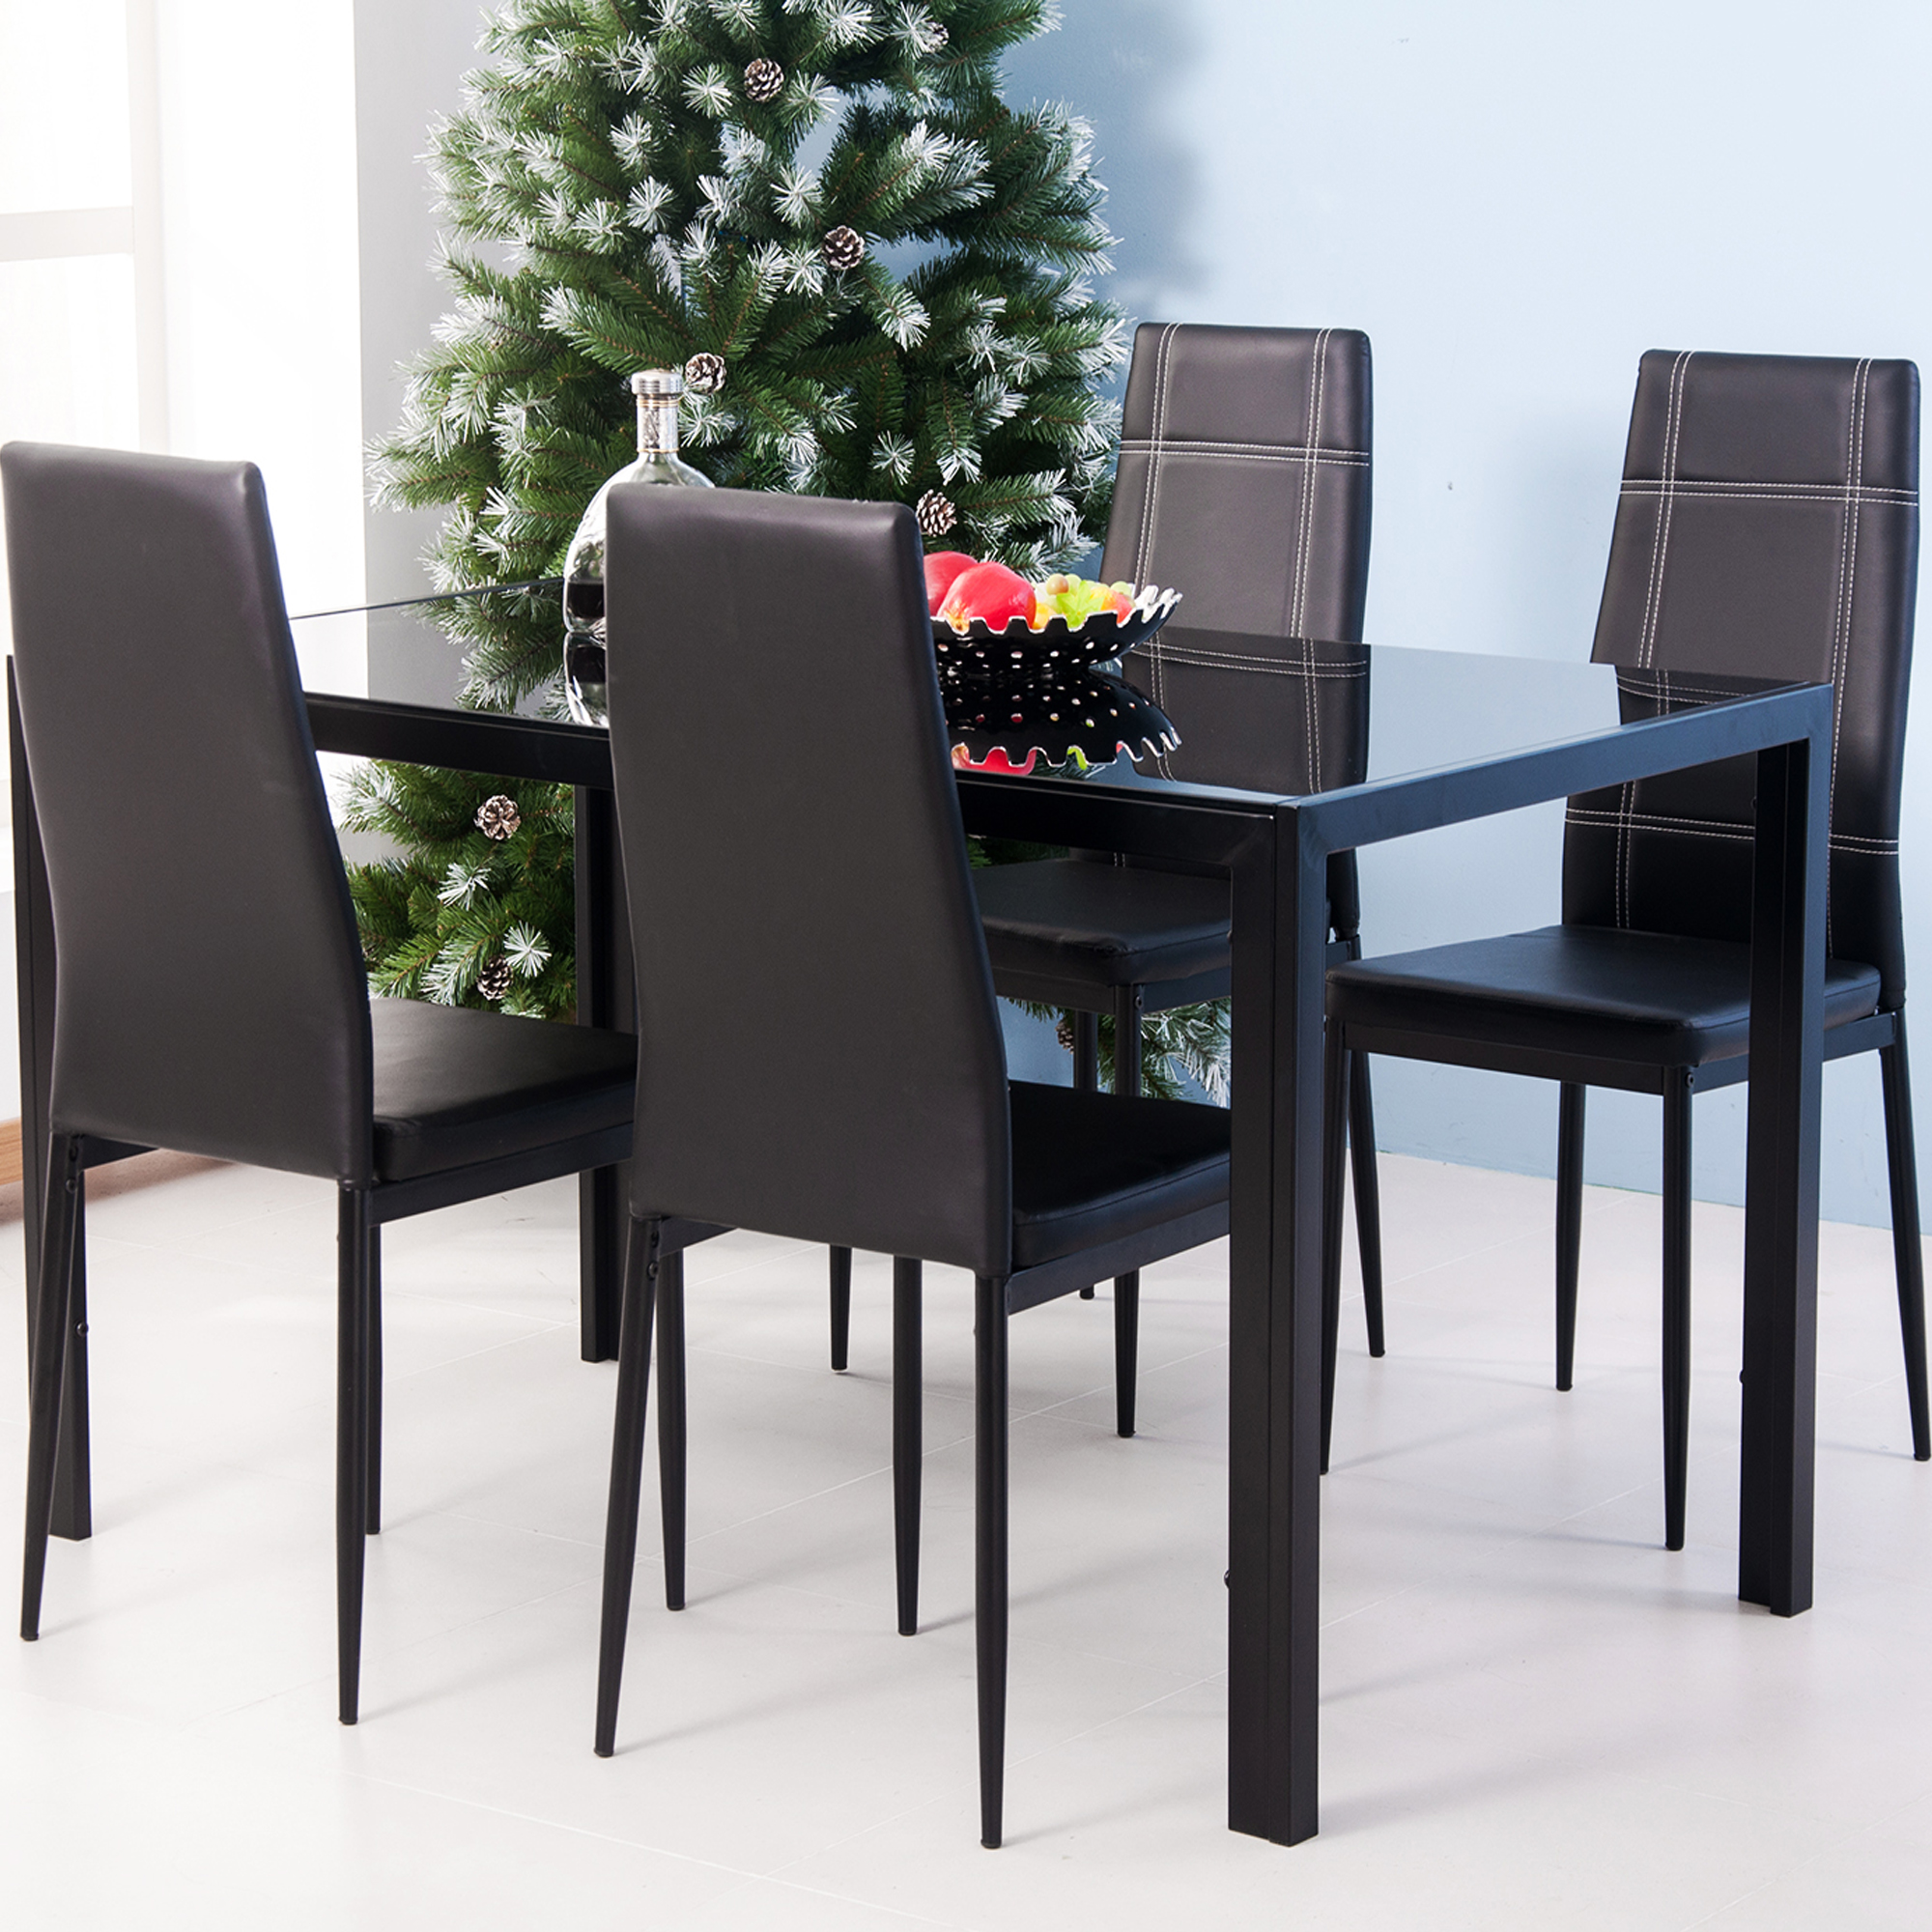 Small Dining Table Set For 4, Metal Dining Table Set With 4 Chairs Heavy Duty Tempered Glass Dining Table And 4 Chairs 5 Piece Kitchen Dining Set For Bar Breakfast Nook Small Spaces Dining Room Furniture Black W12789